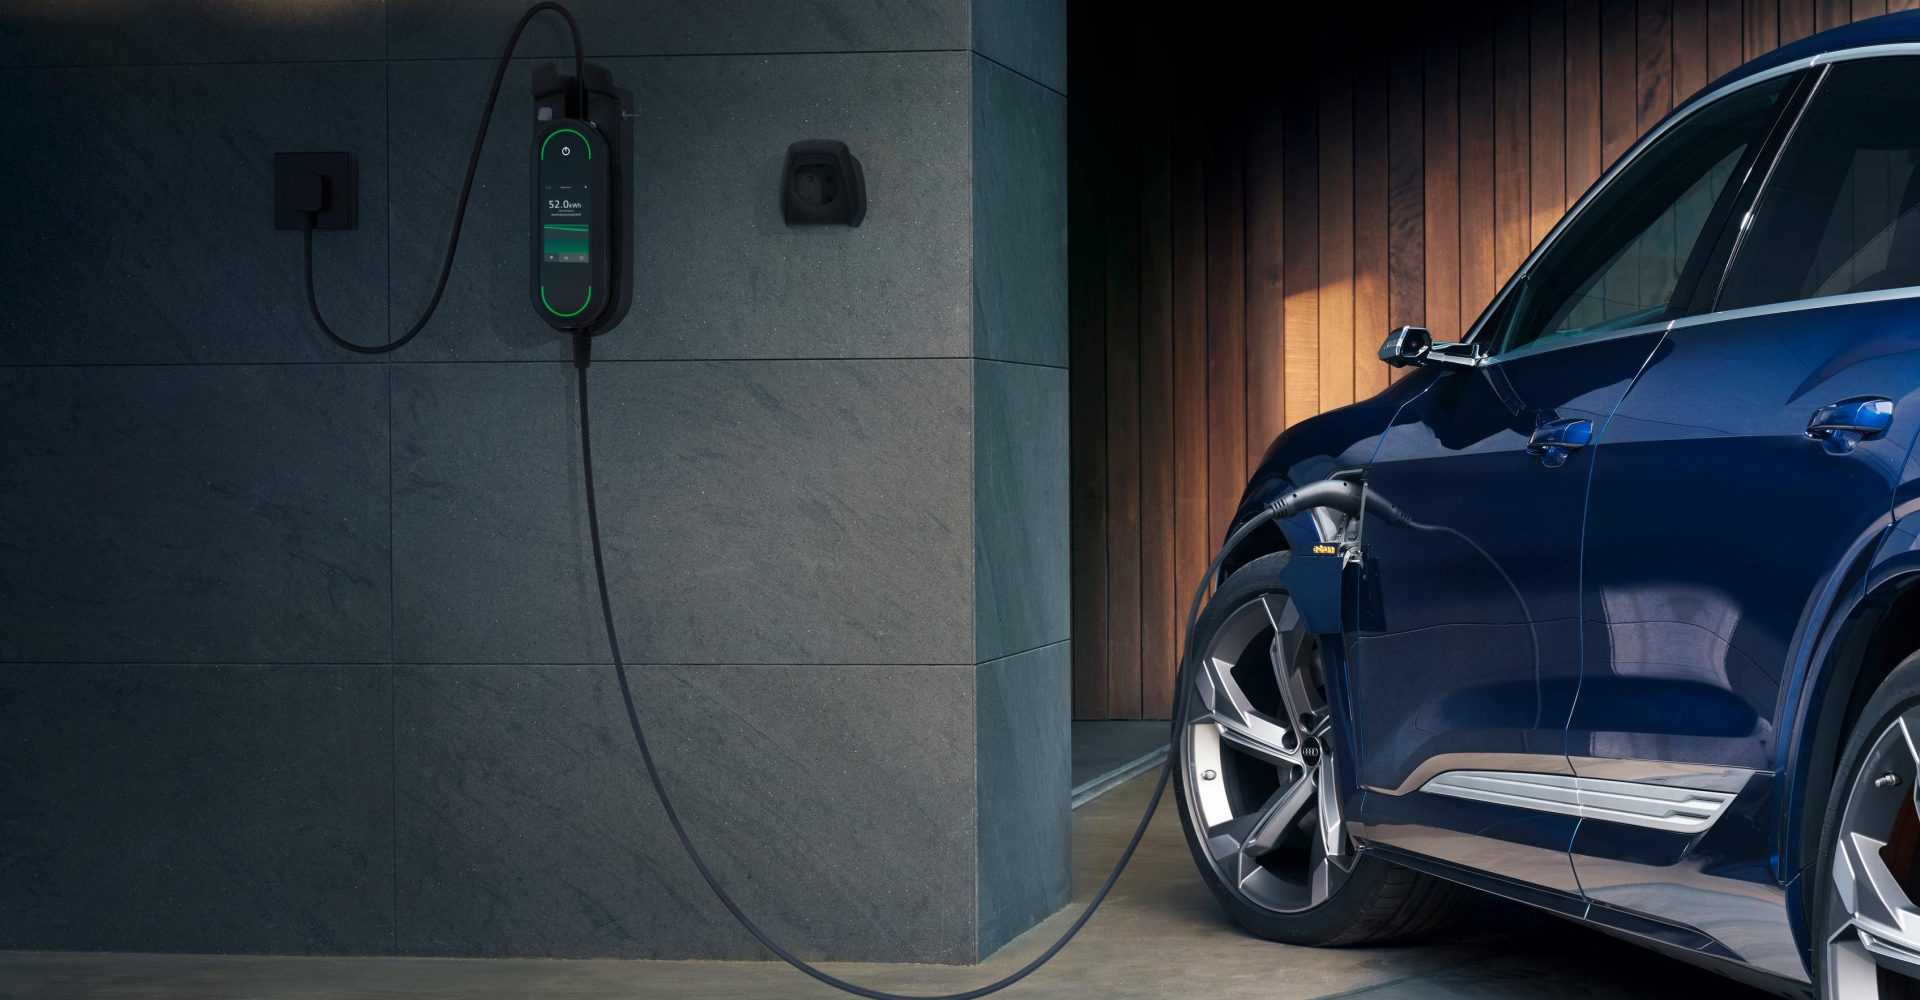 How smart electric vehicle charging can relieve pressure on the grid